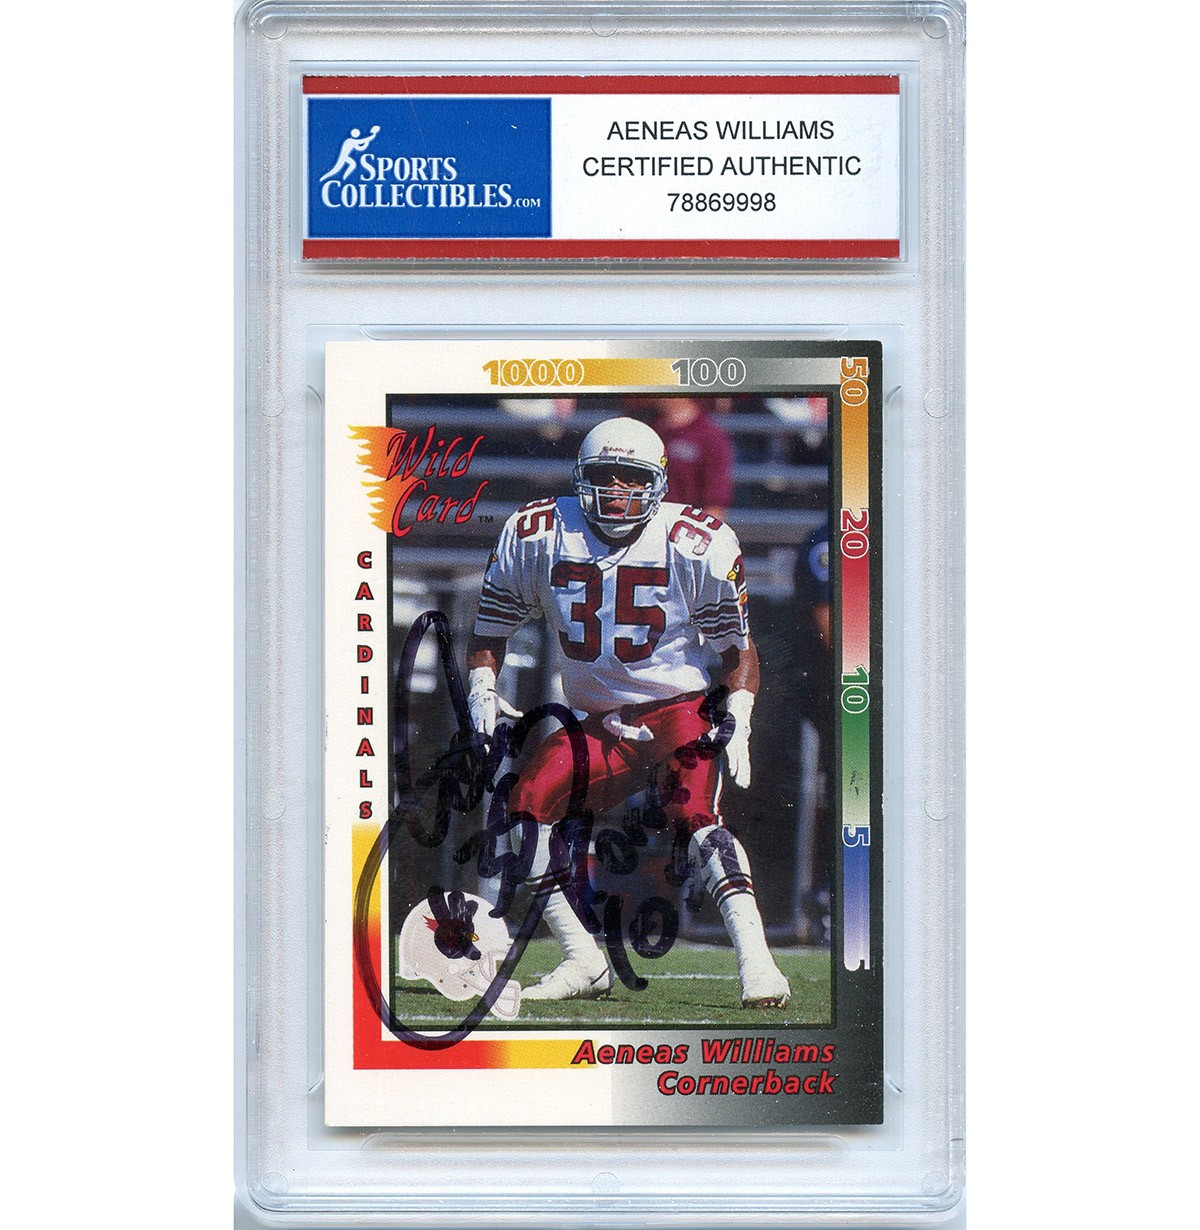 Aeneas Williams Autographed Signed 1992 AAA Sports Trading Card